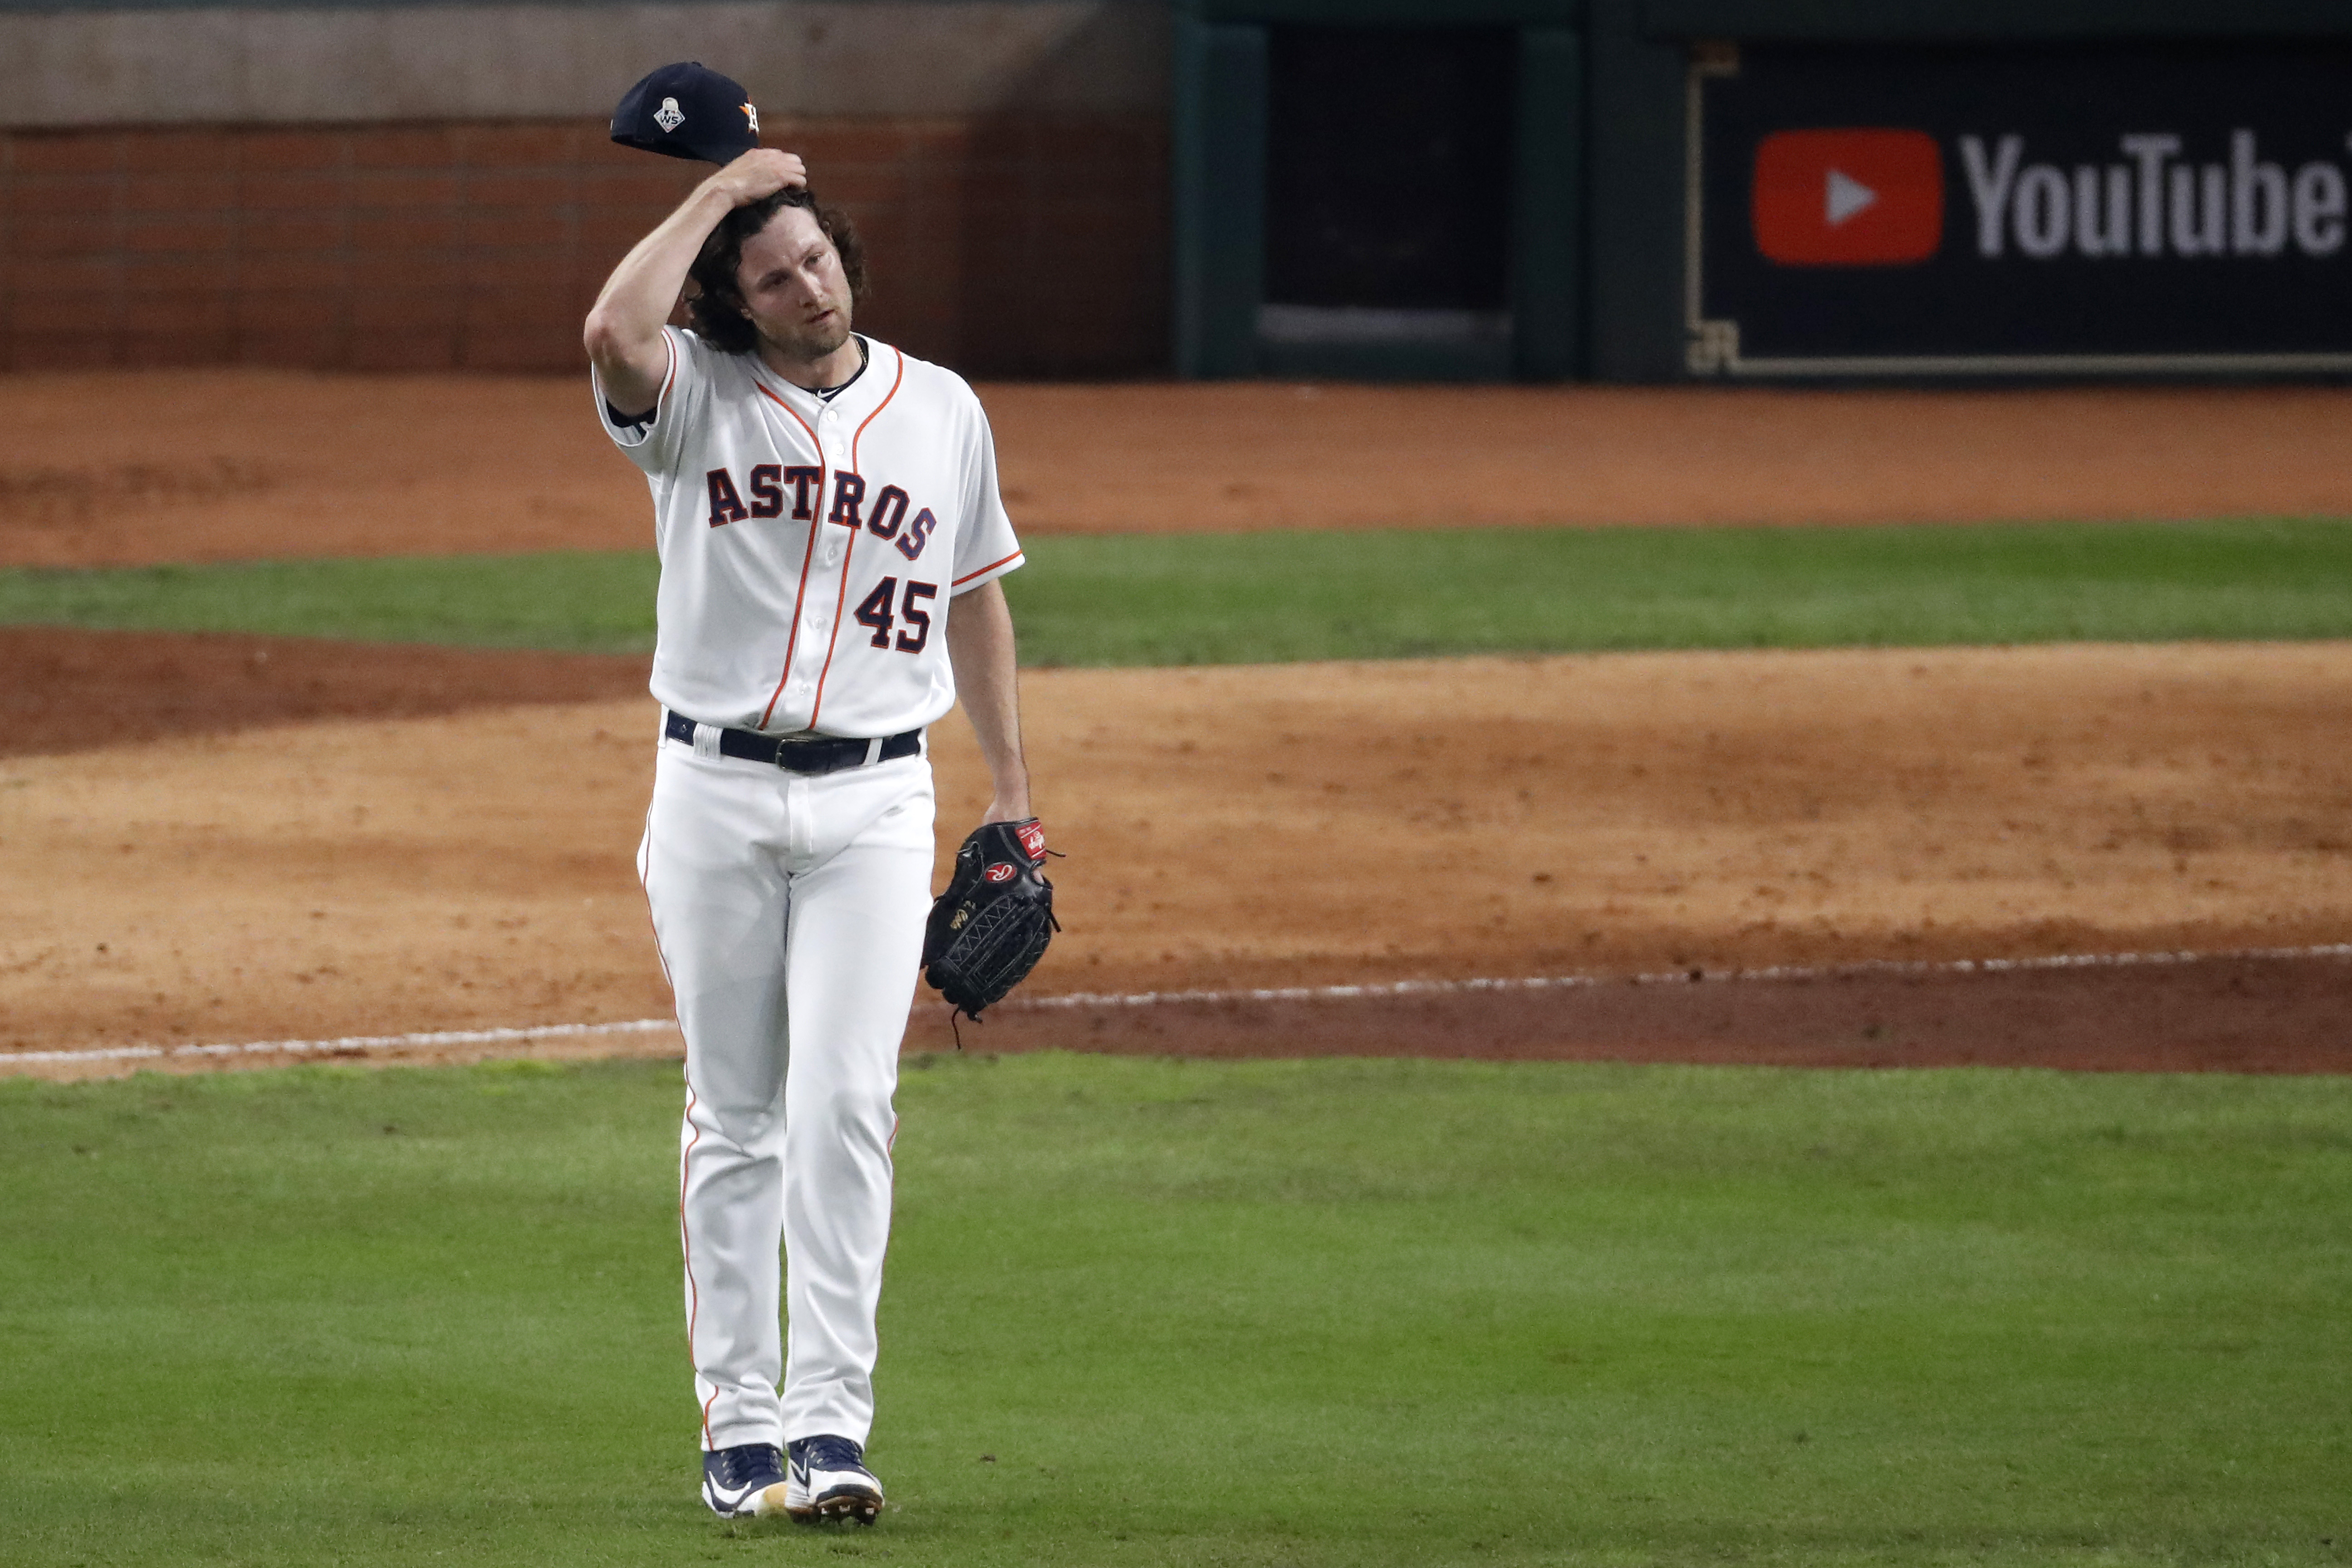 Houston Astros pitcher Gerrit Cole reacts after allowing an RBI double to Juan Soto of the Nationals in the World Series. Yikes!